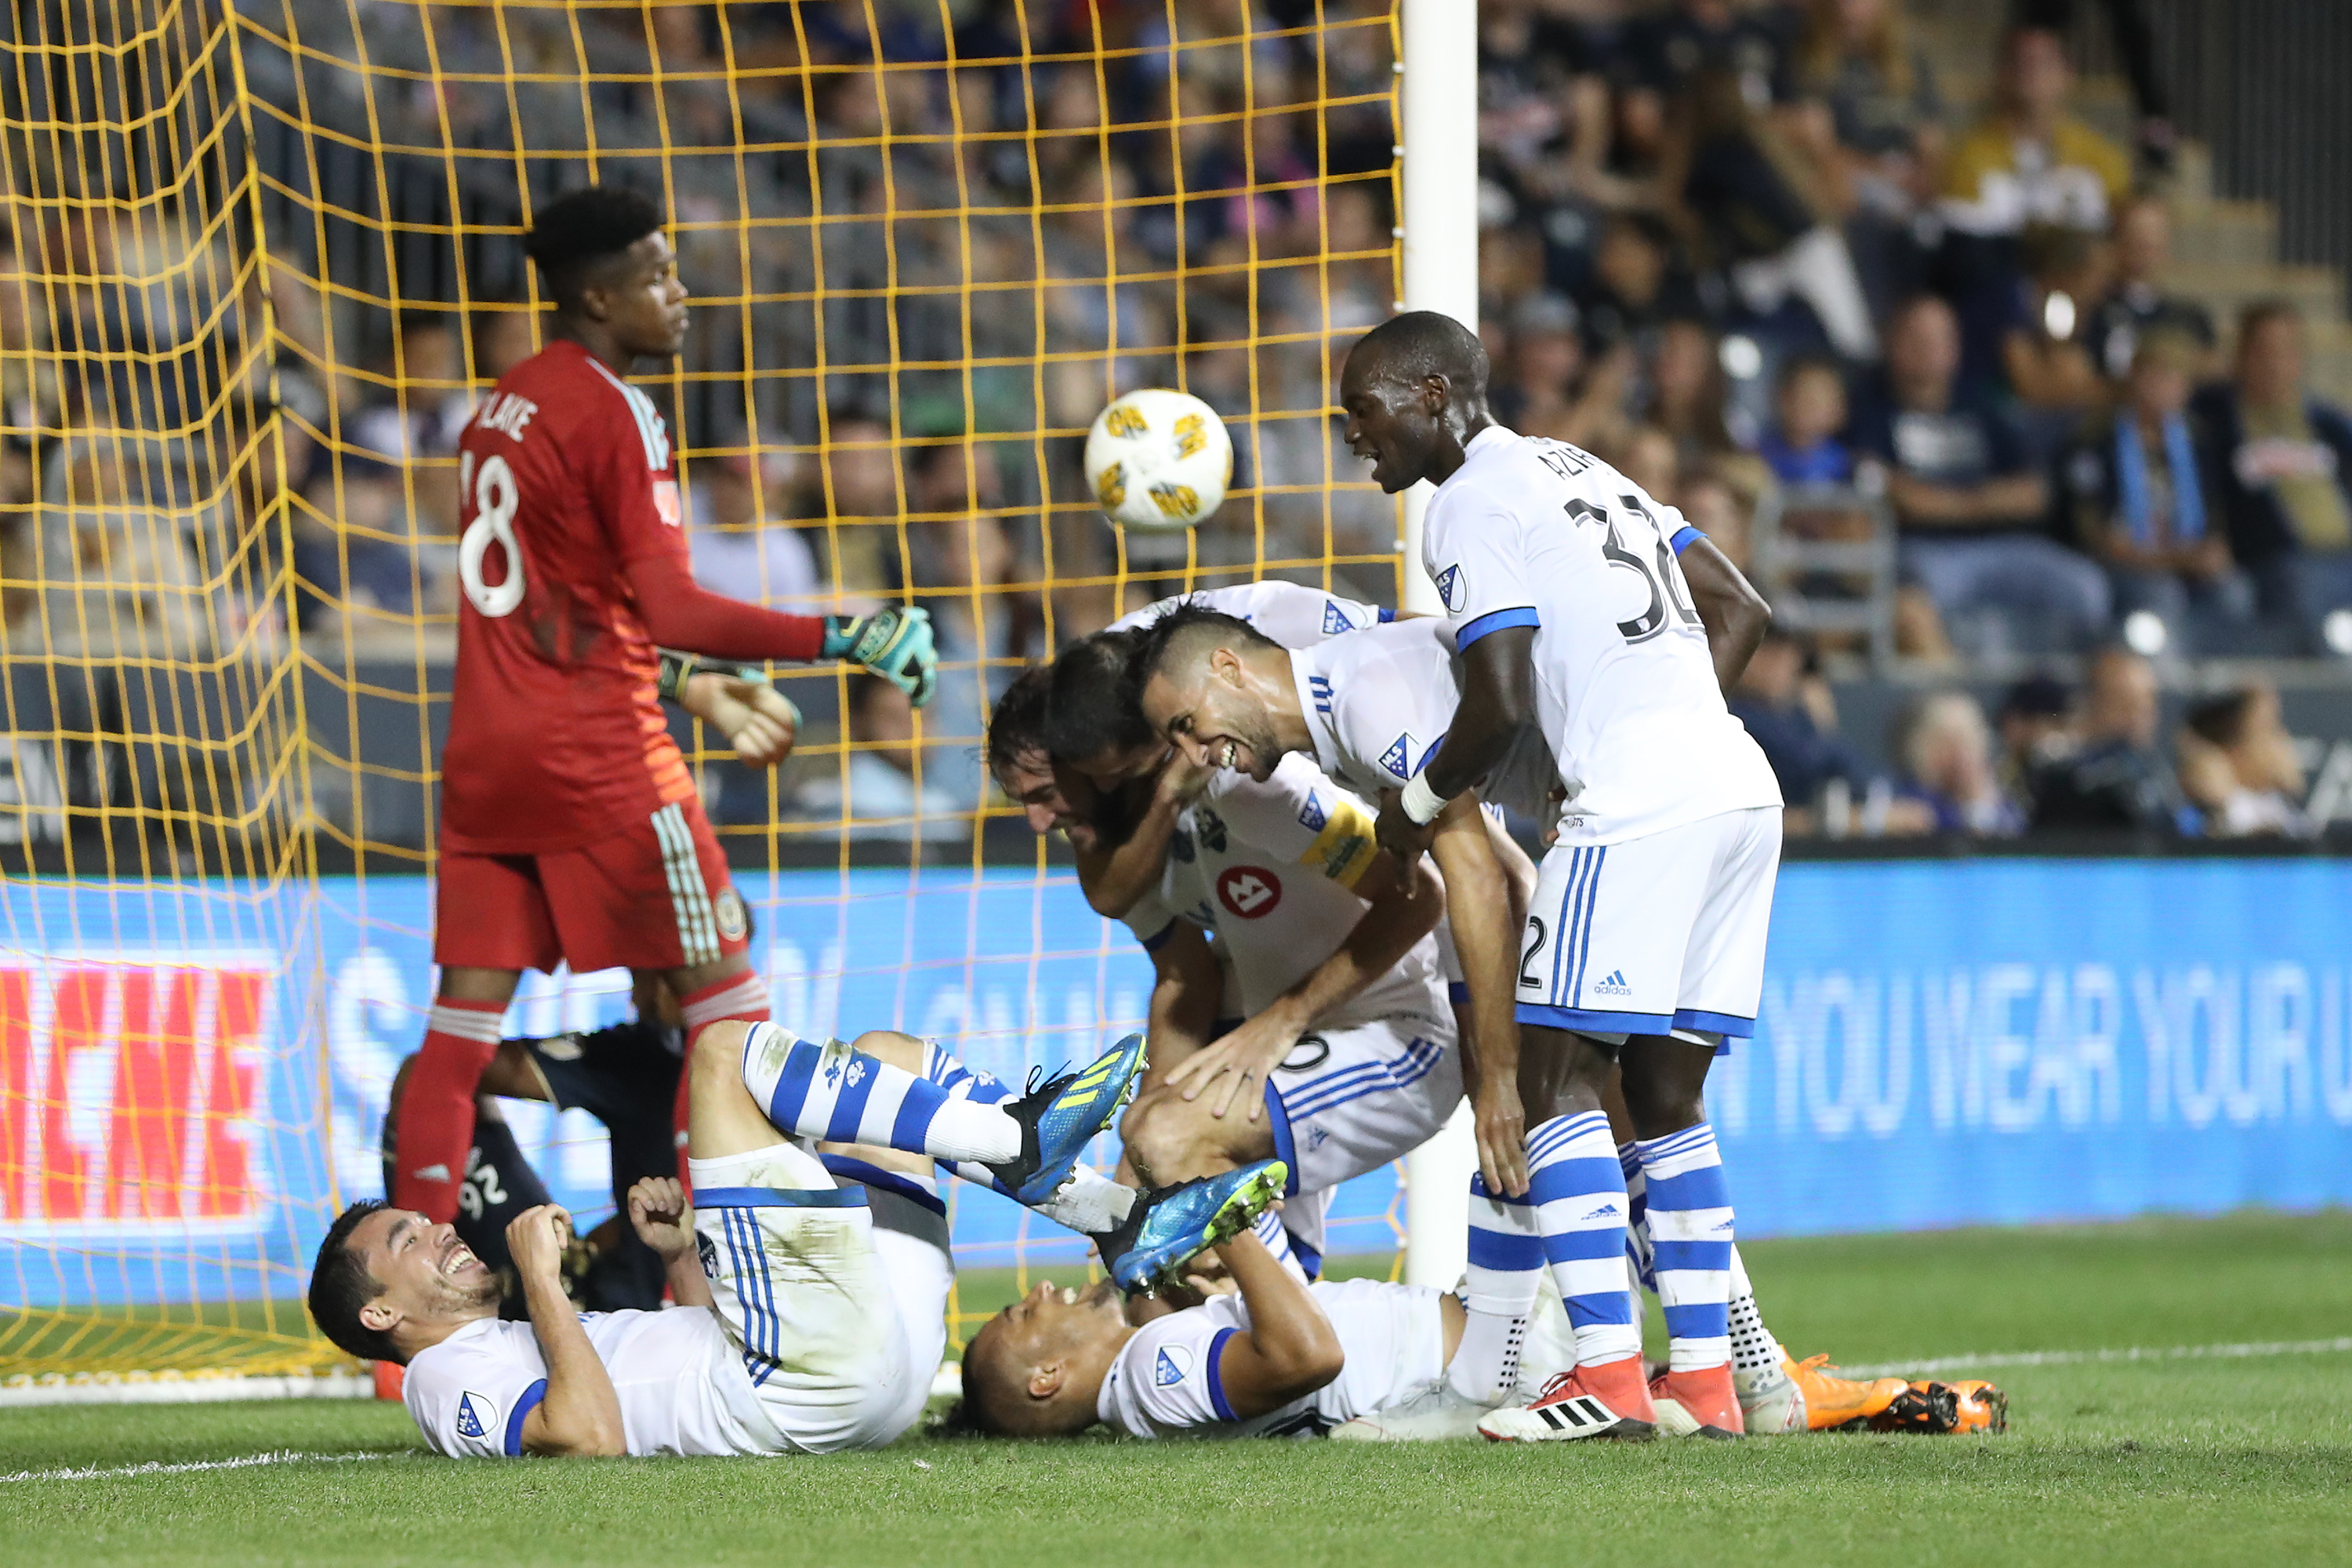 Andre Blake could only look on as Quincy Amarikwa scored the goal that sealed the Union�s fate.